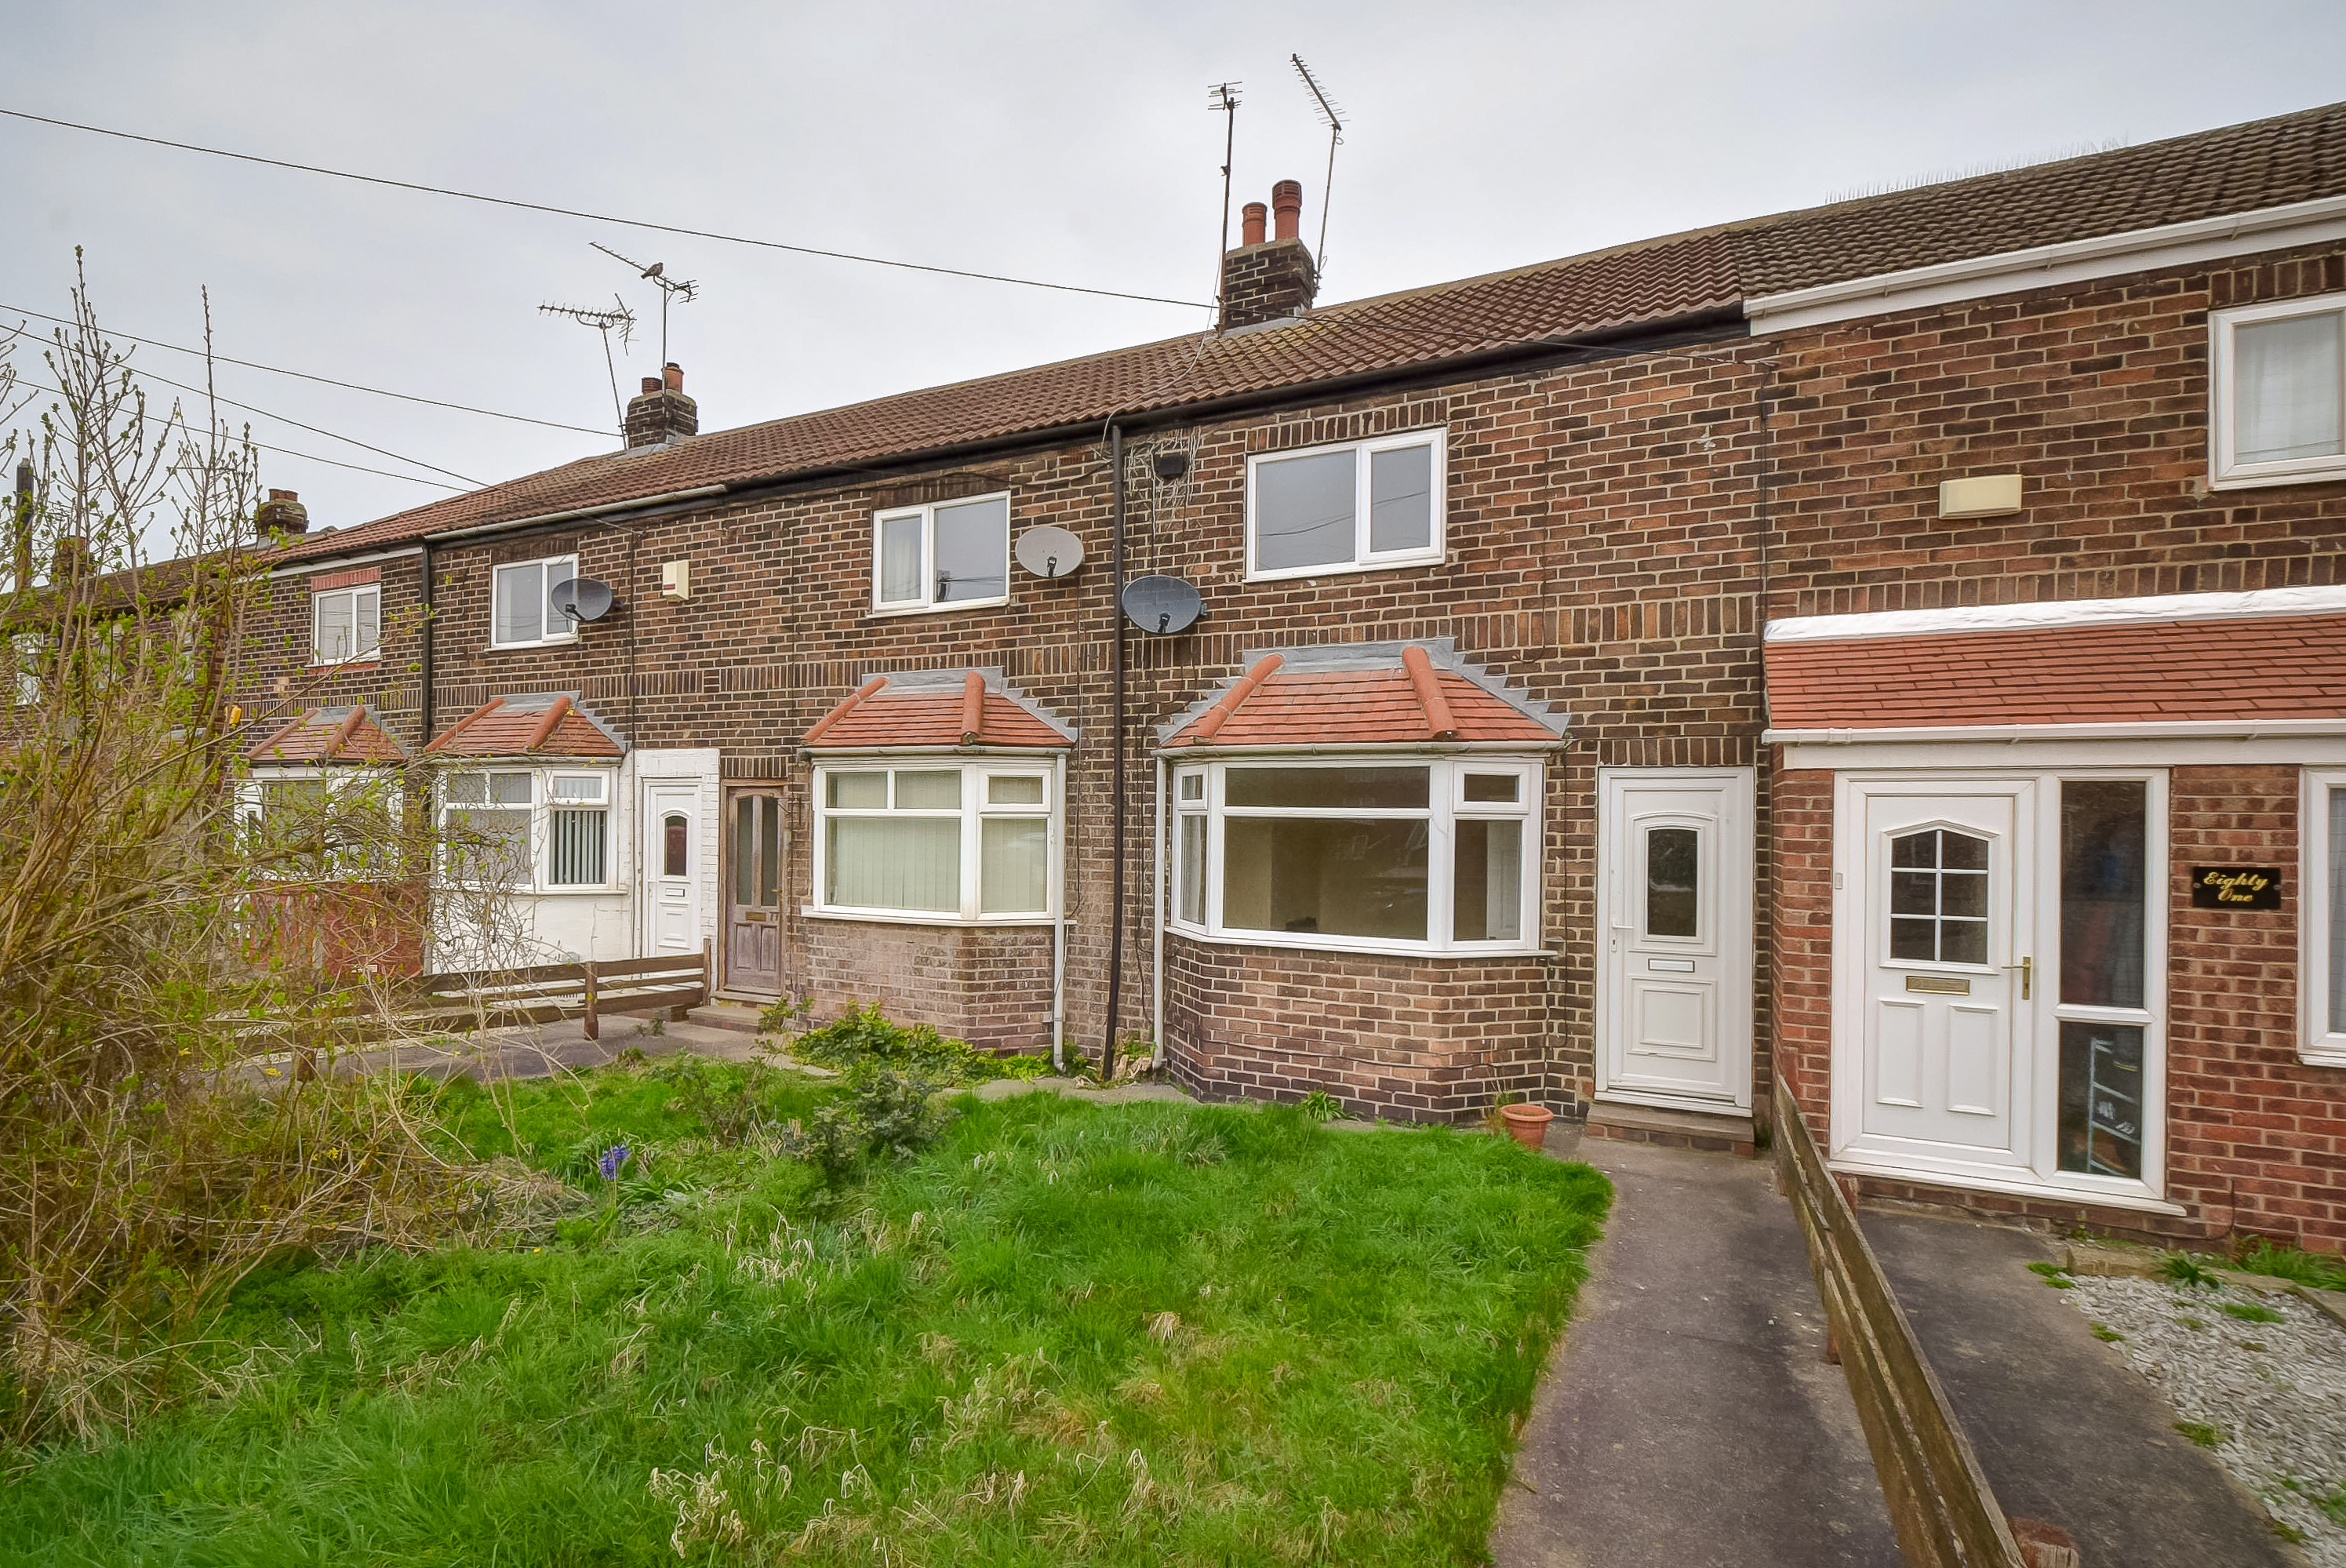 Woodhall Street, Hull £0 Sold by Lets Sell